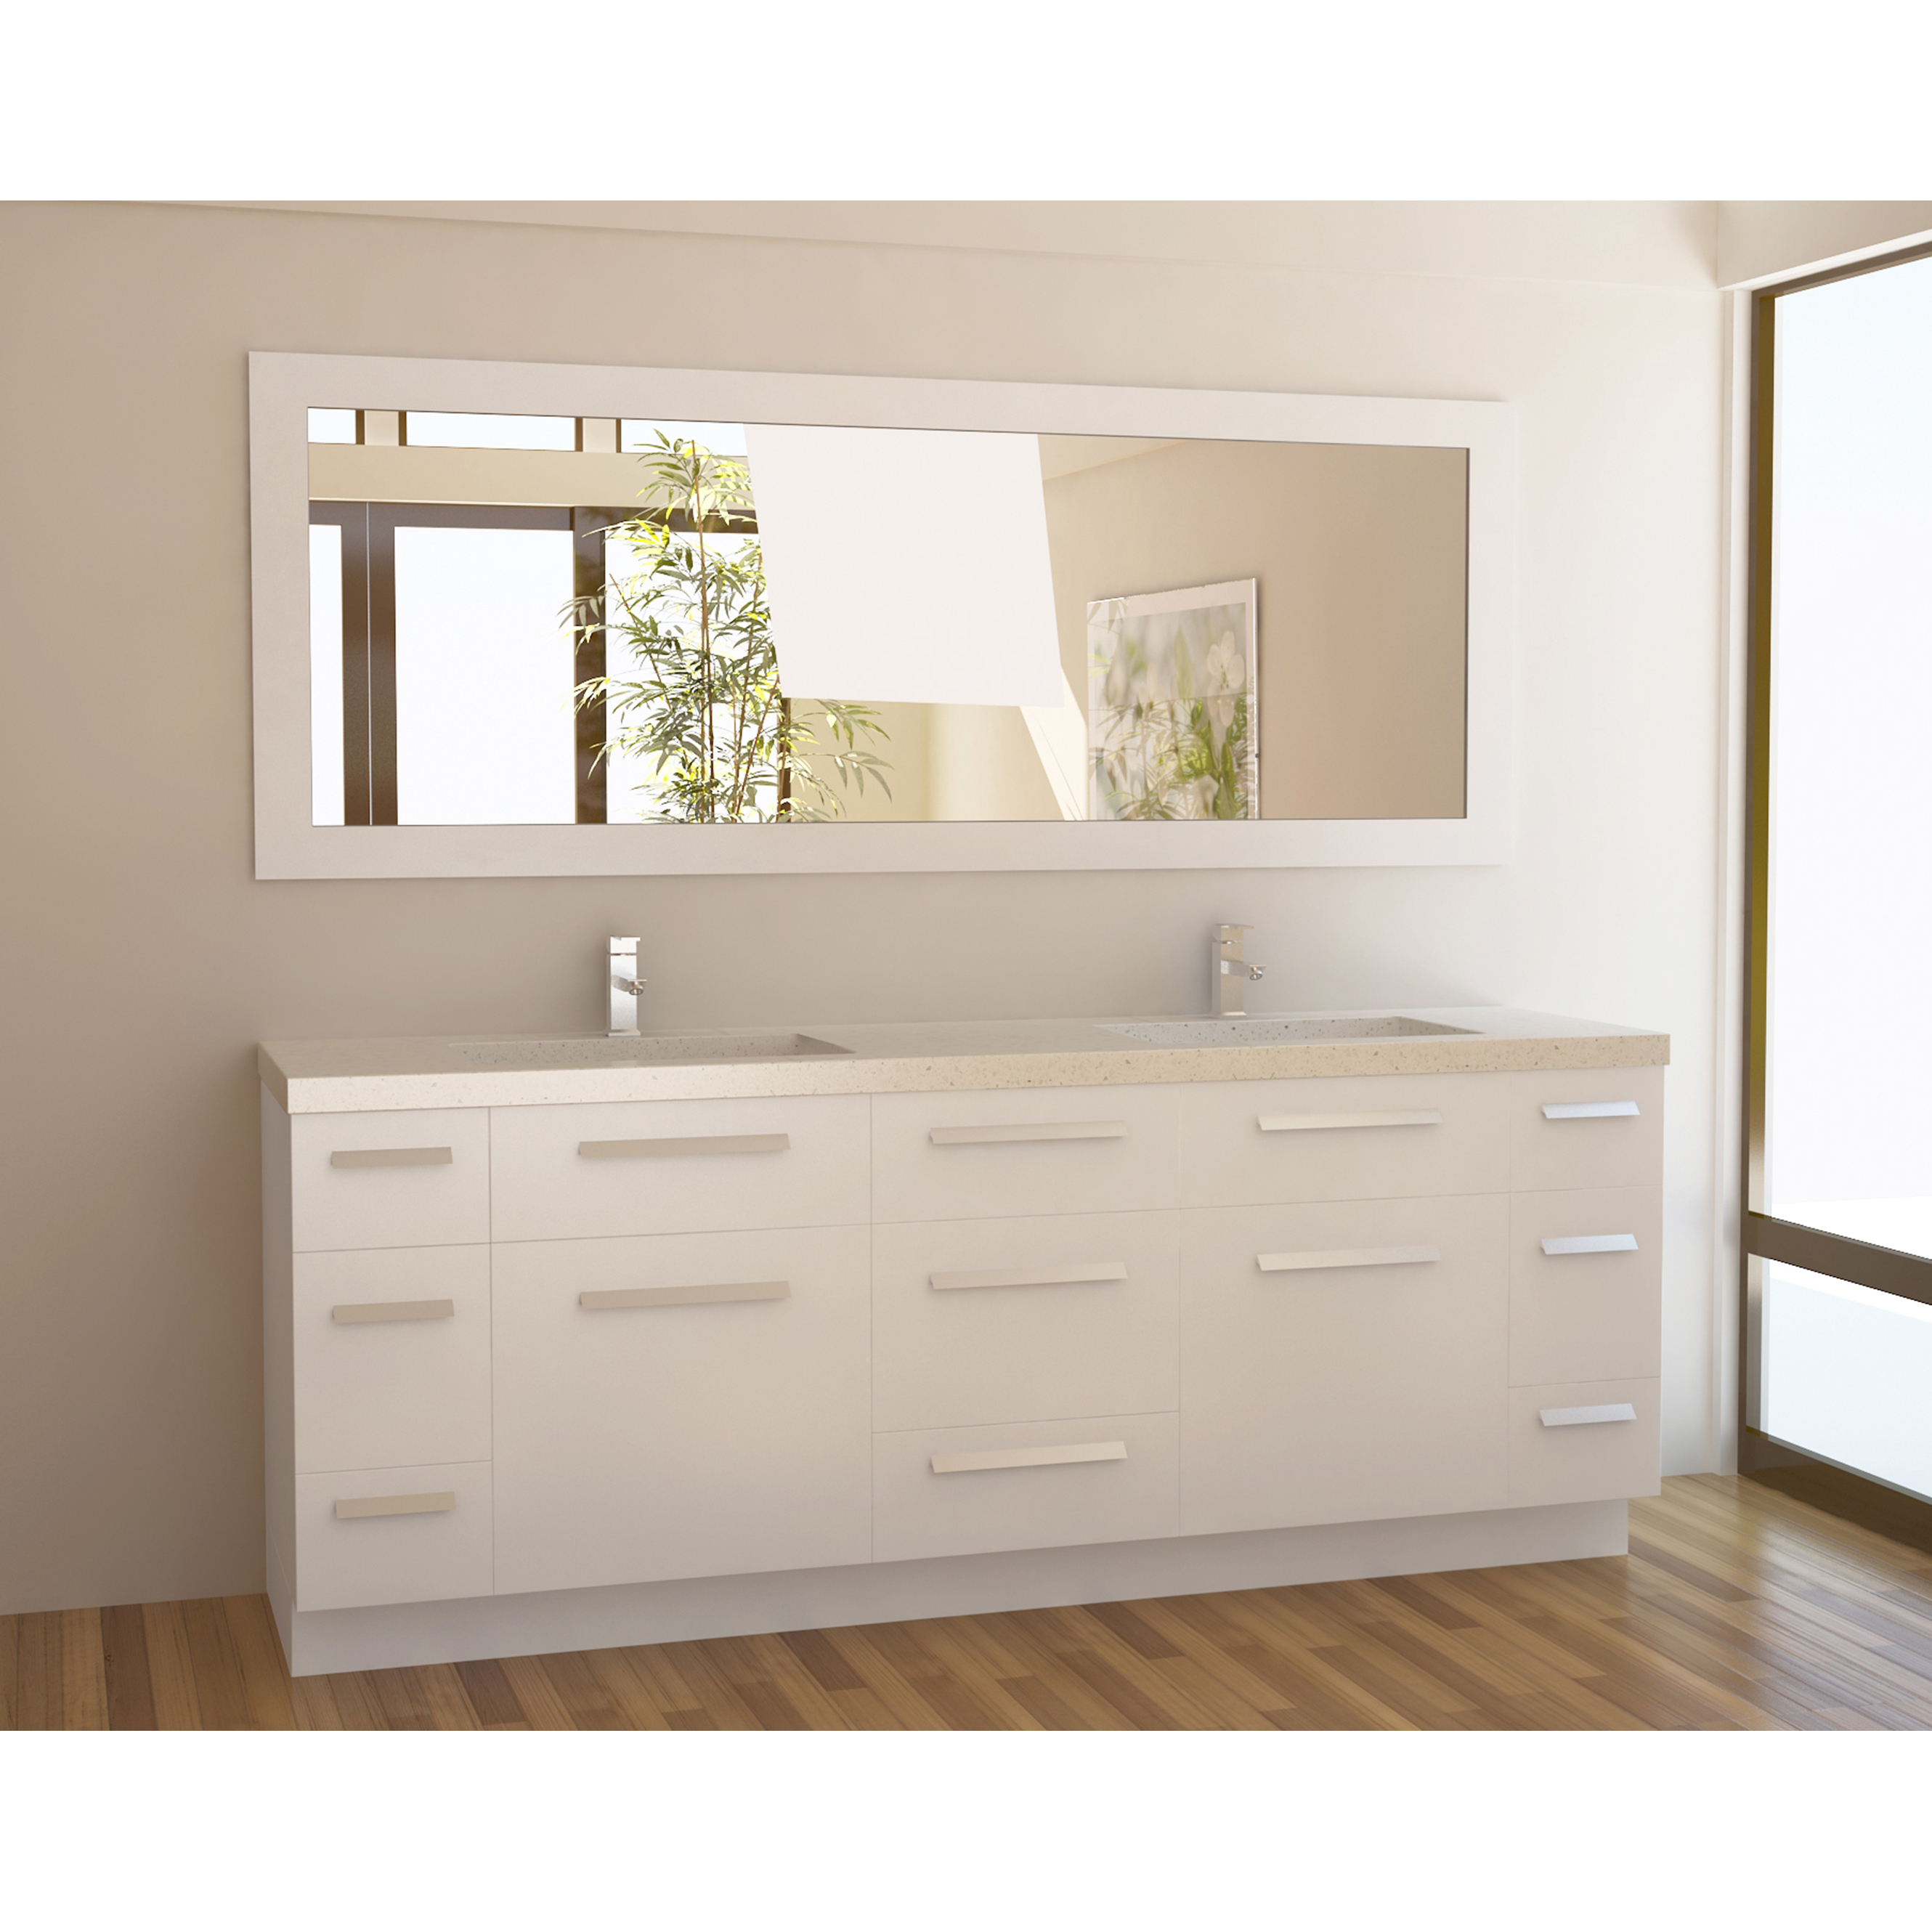 84 inch bathroom vanity the variants homesfeed for Bathroom vanity cabinets